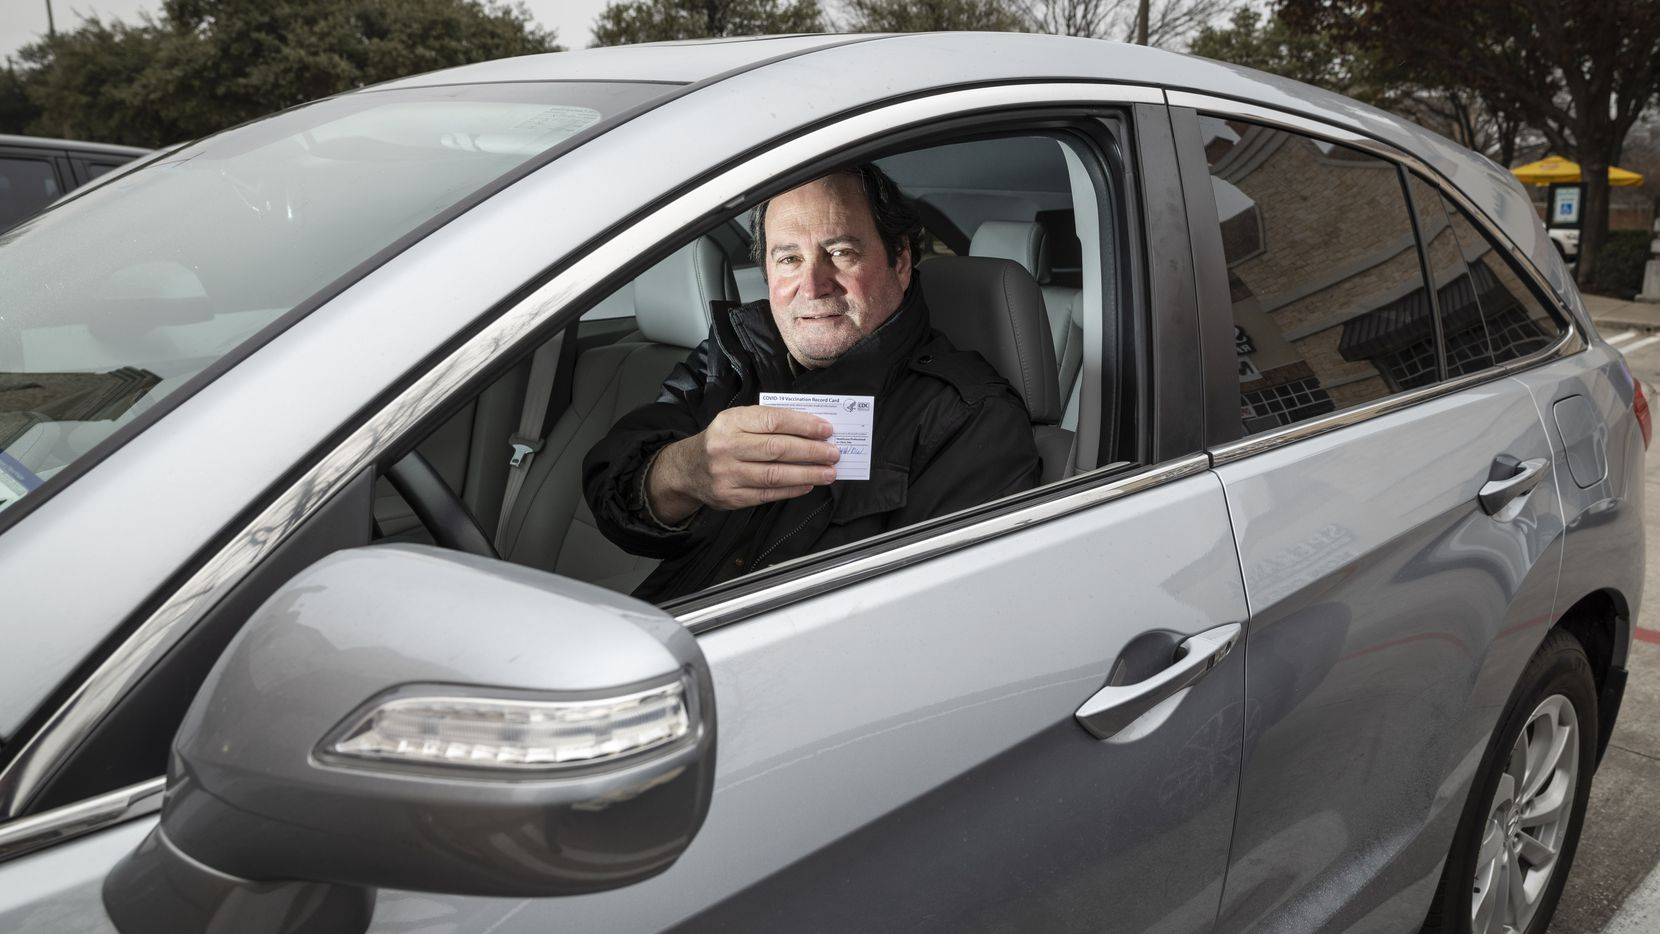 Alan Samuels, 59, of Dallas holds the COVID-19 vaccination card he received after getting his first shot by traveling to Austin from Dallas and waiting an hour to receive it.